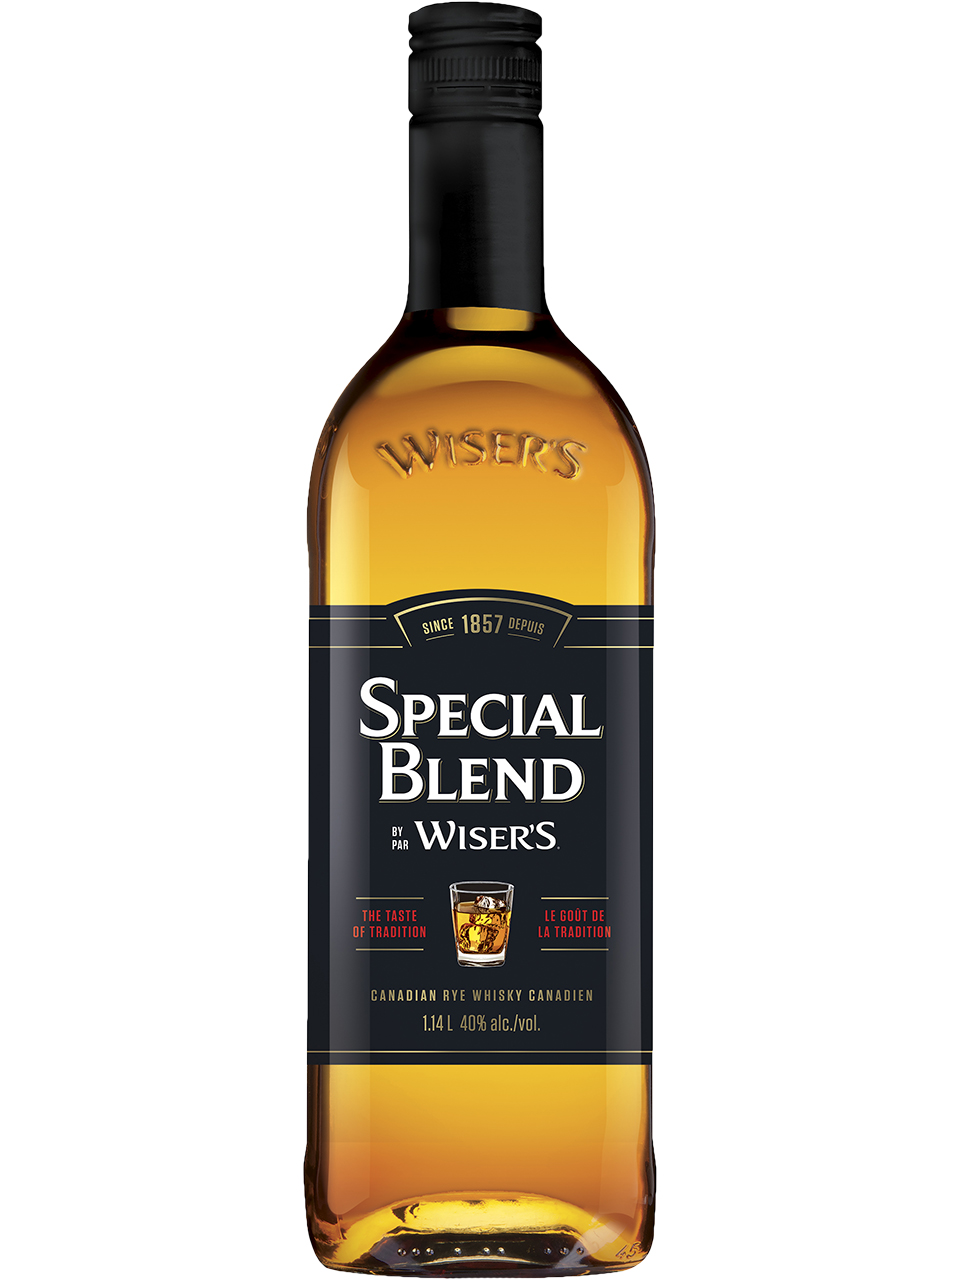 Special Blend by Wiser's